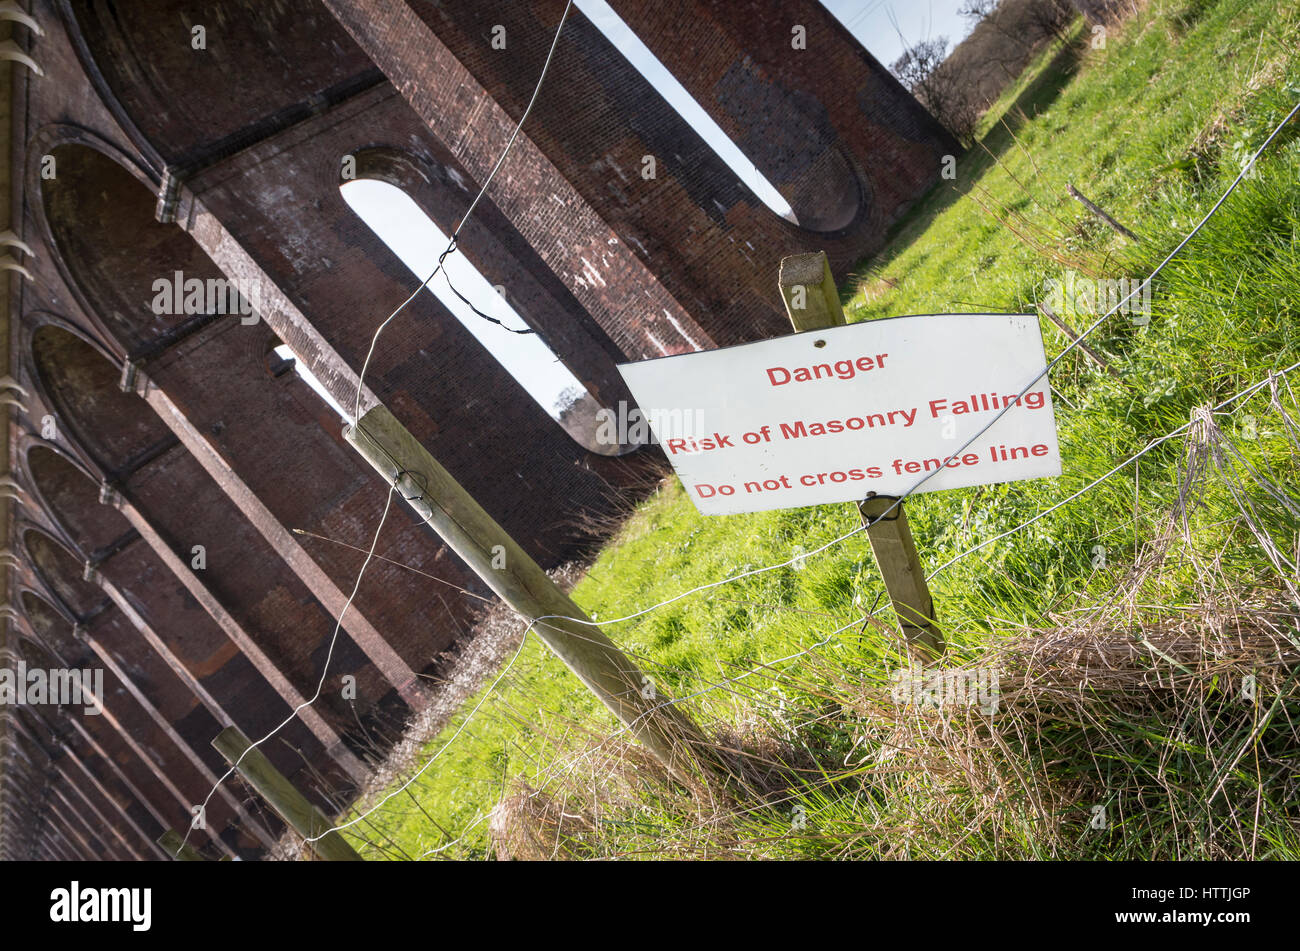 Sign warning 'Danger - Risk of masonry falling' sign at the Balcombe Viaduct, West Sussex, UK - Stock Image